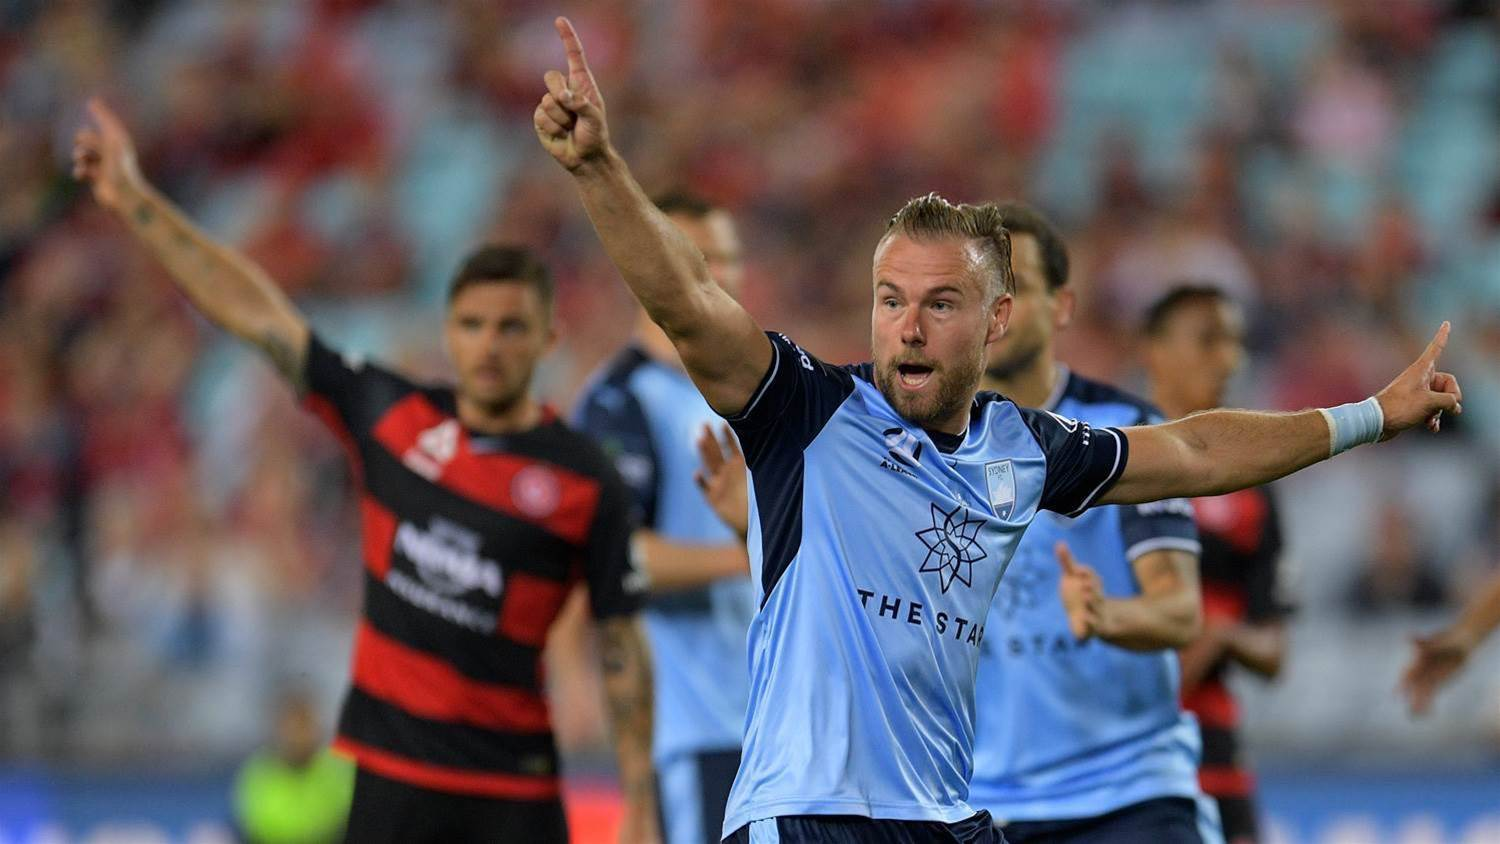 Western Sydney Wanderers v Sydney FC player ratings